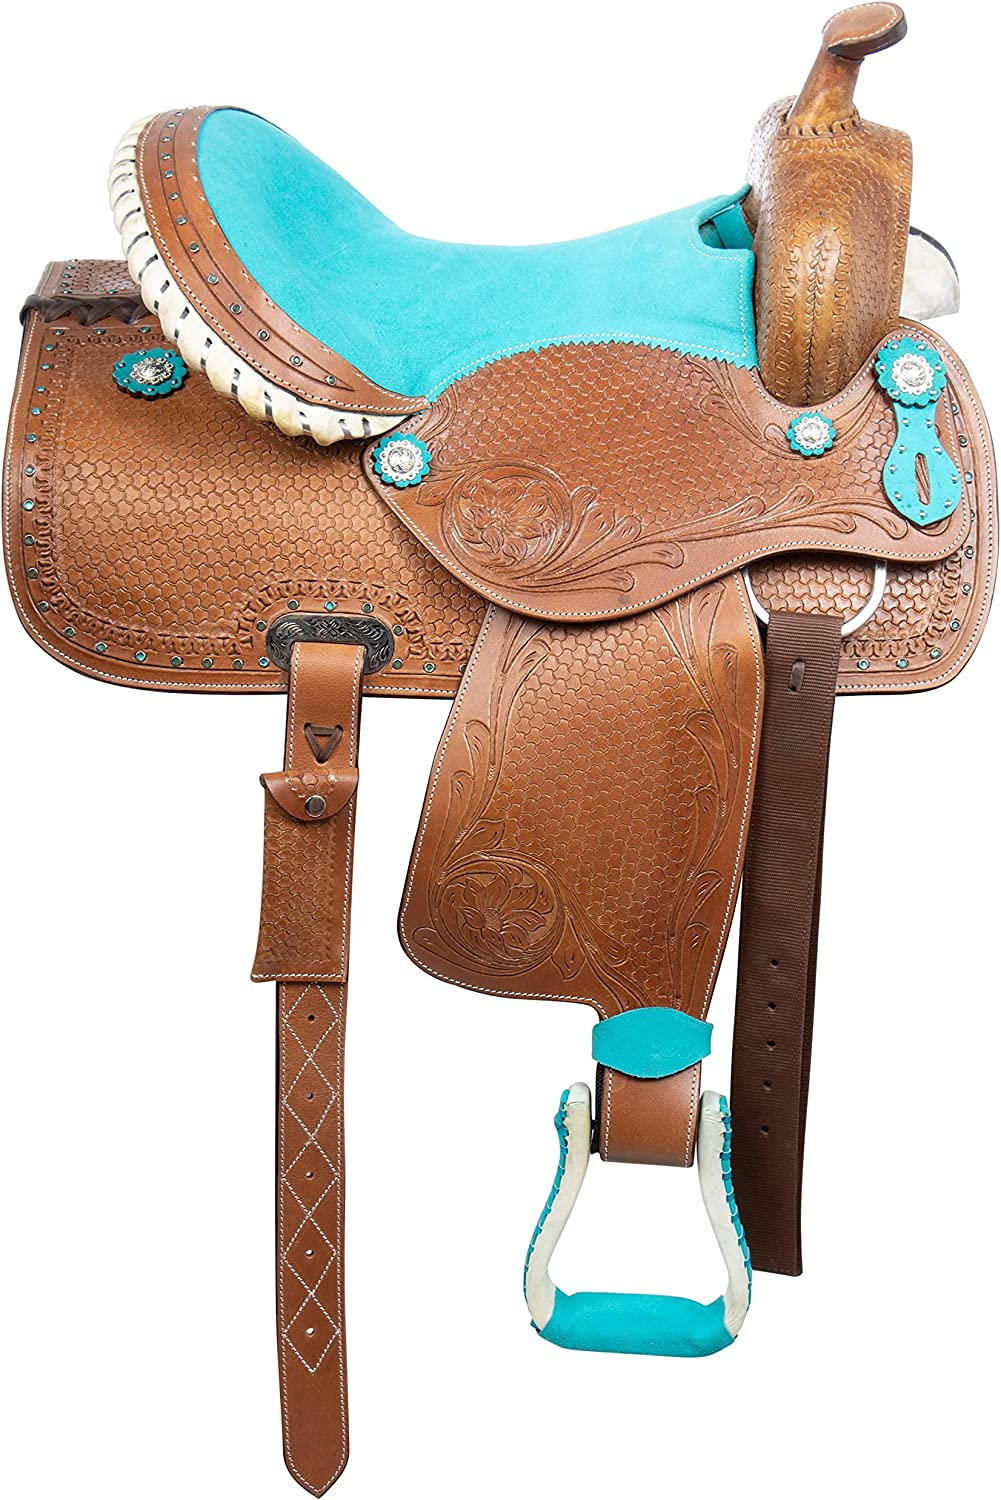 Details about  /COWBOY WESTERN SADDLE BARREL RACING SHOW RACER TOOLED USED LEATHER TACK 15 16